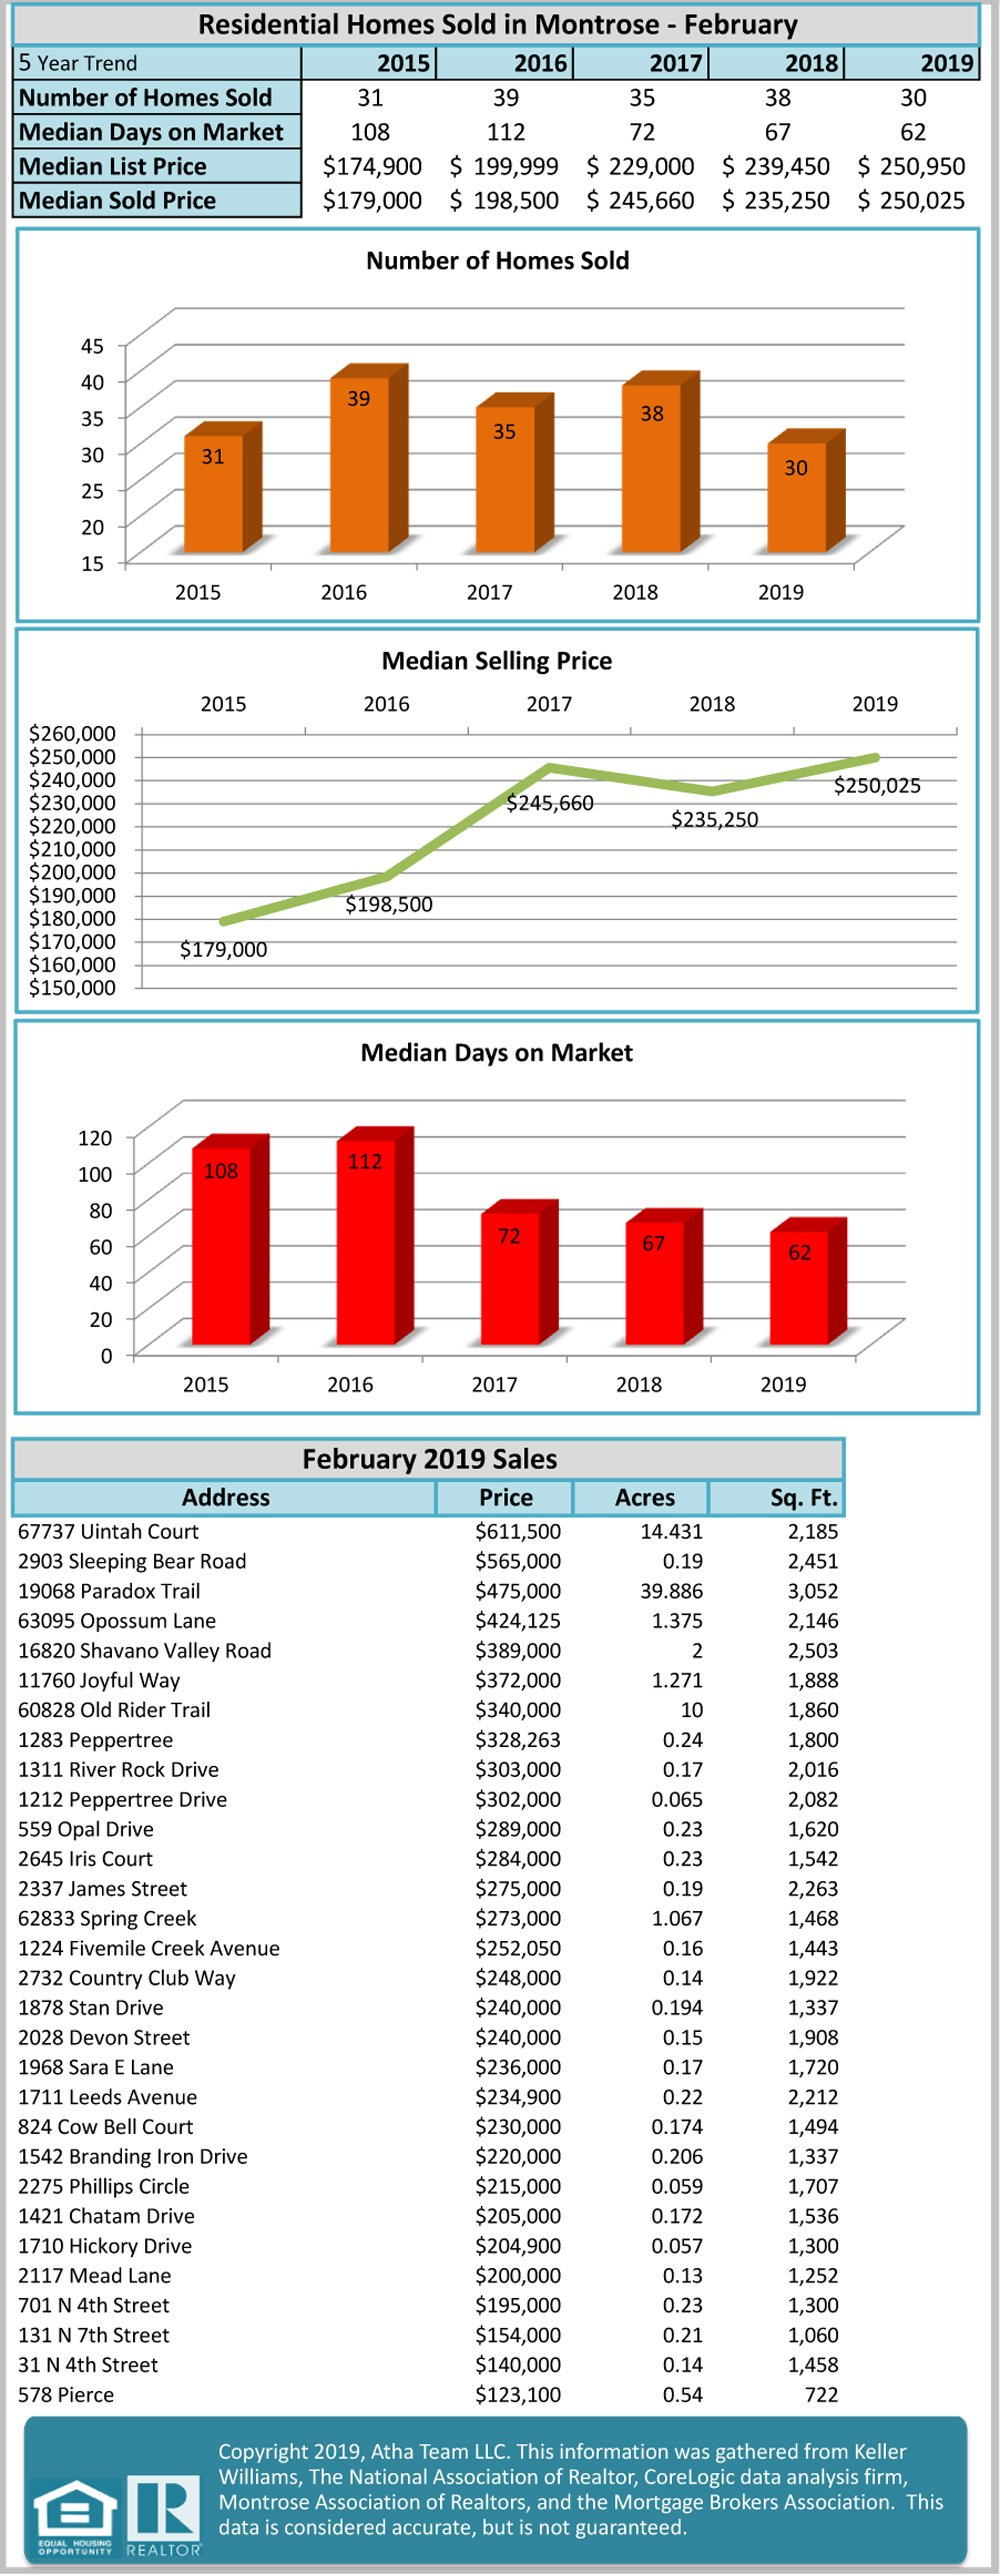 Residential Homes Sold in Montrose - February Real Estate Statistics